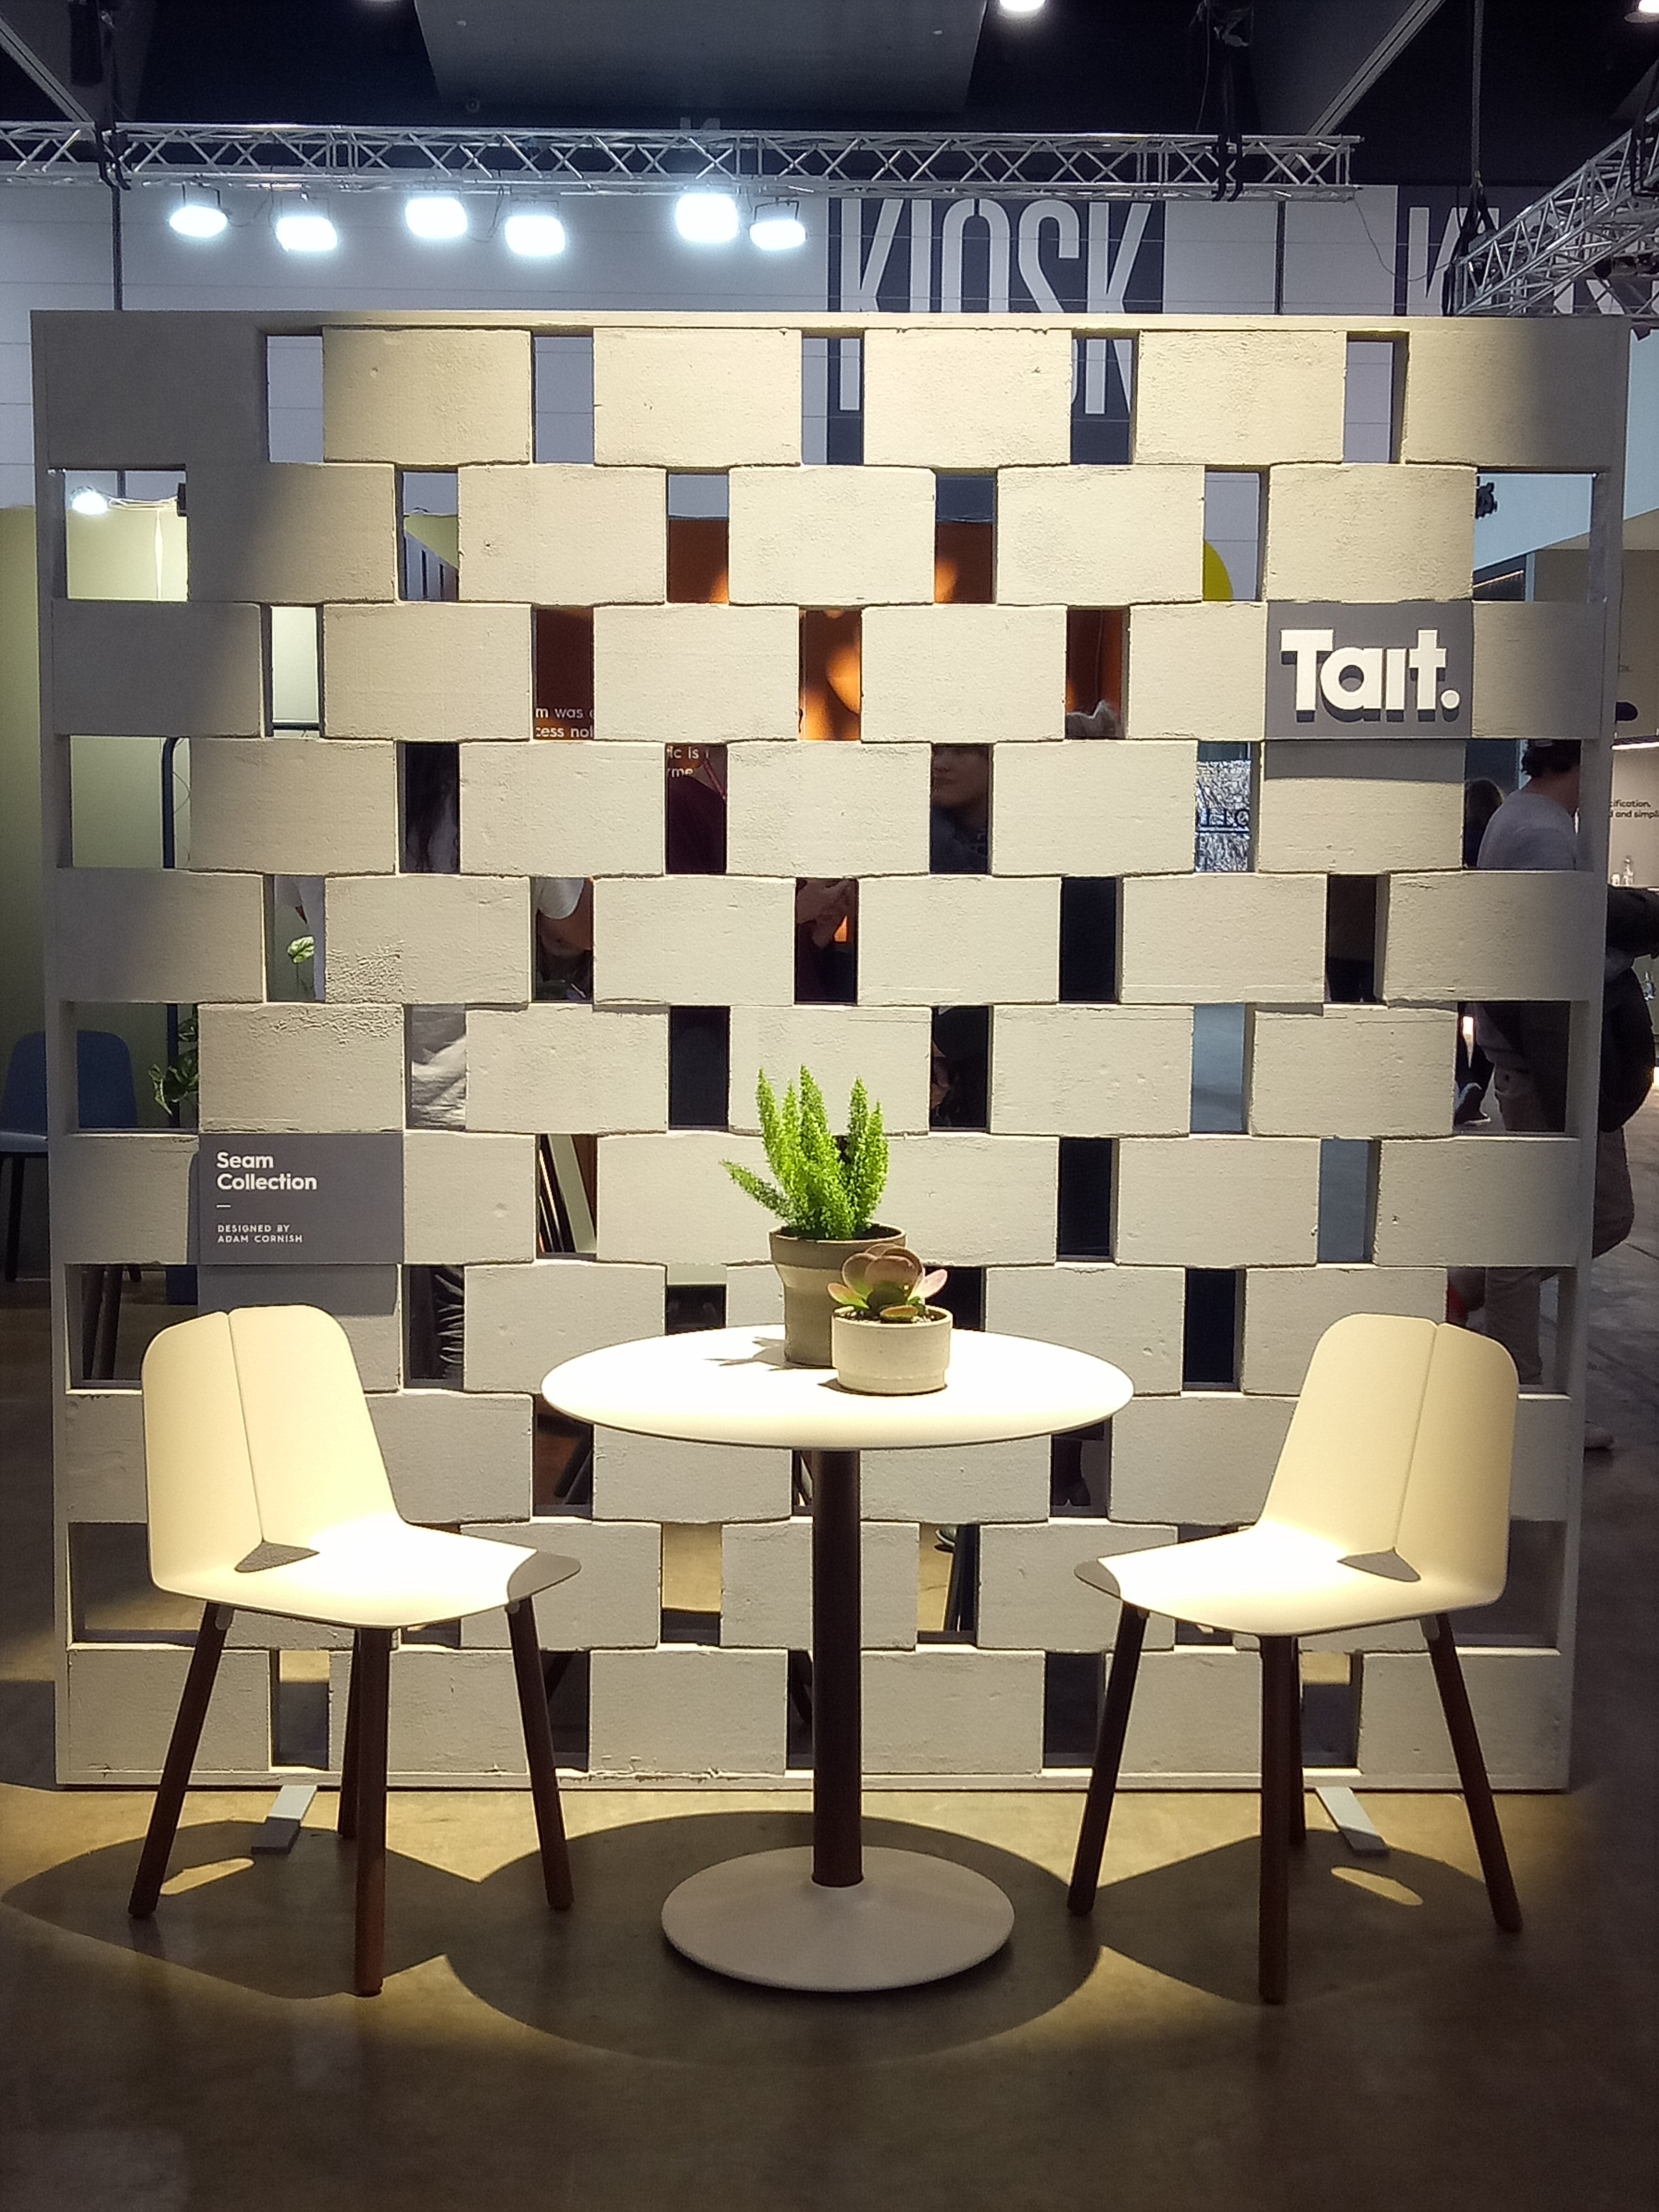 Denfair, Furniture Expo, Tait Furniture, Interior Styling, Interior Design, Denfair